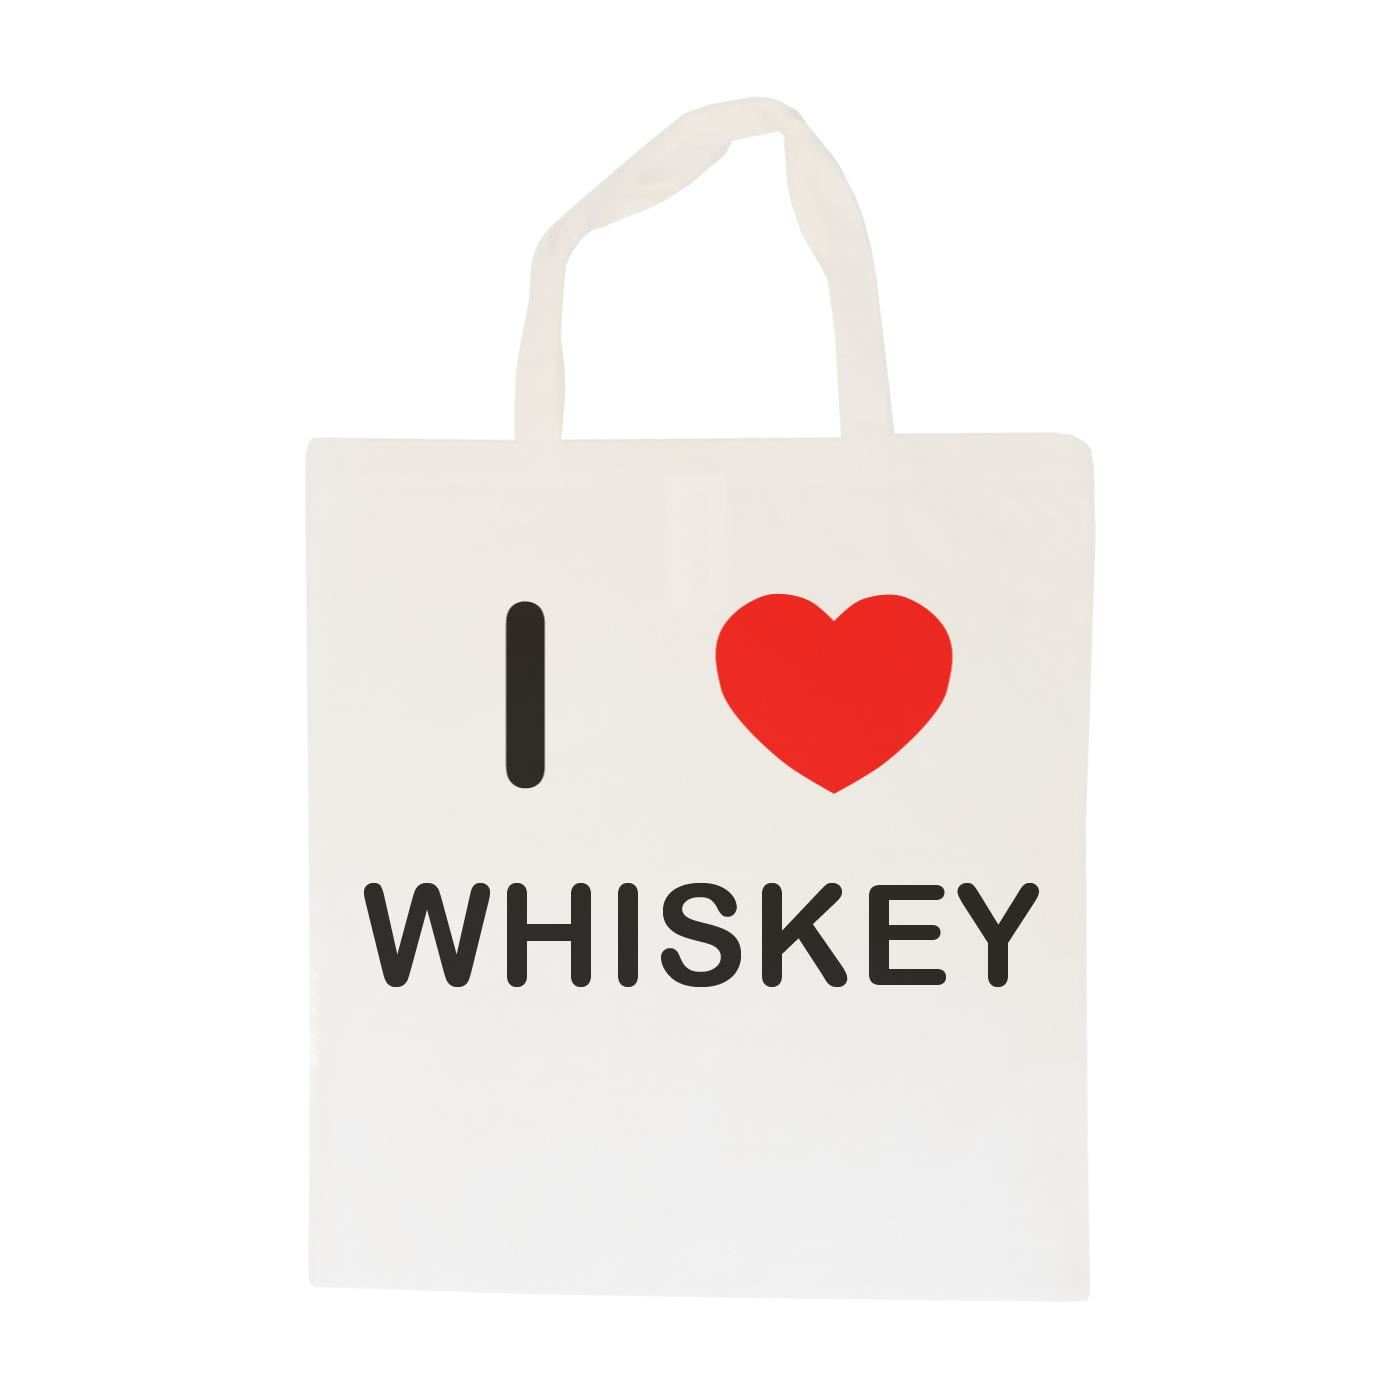 I Love Whiskey - Cotton Bag | Size choice Tote, Shopper or Sling